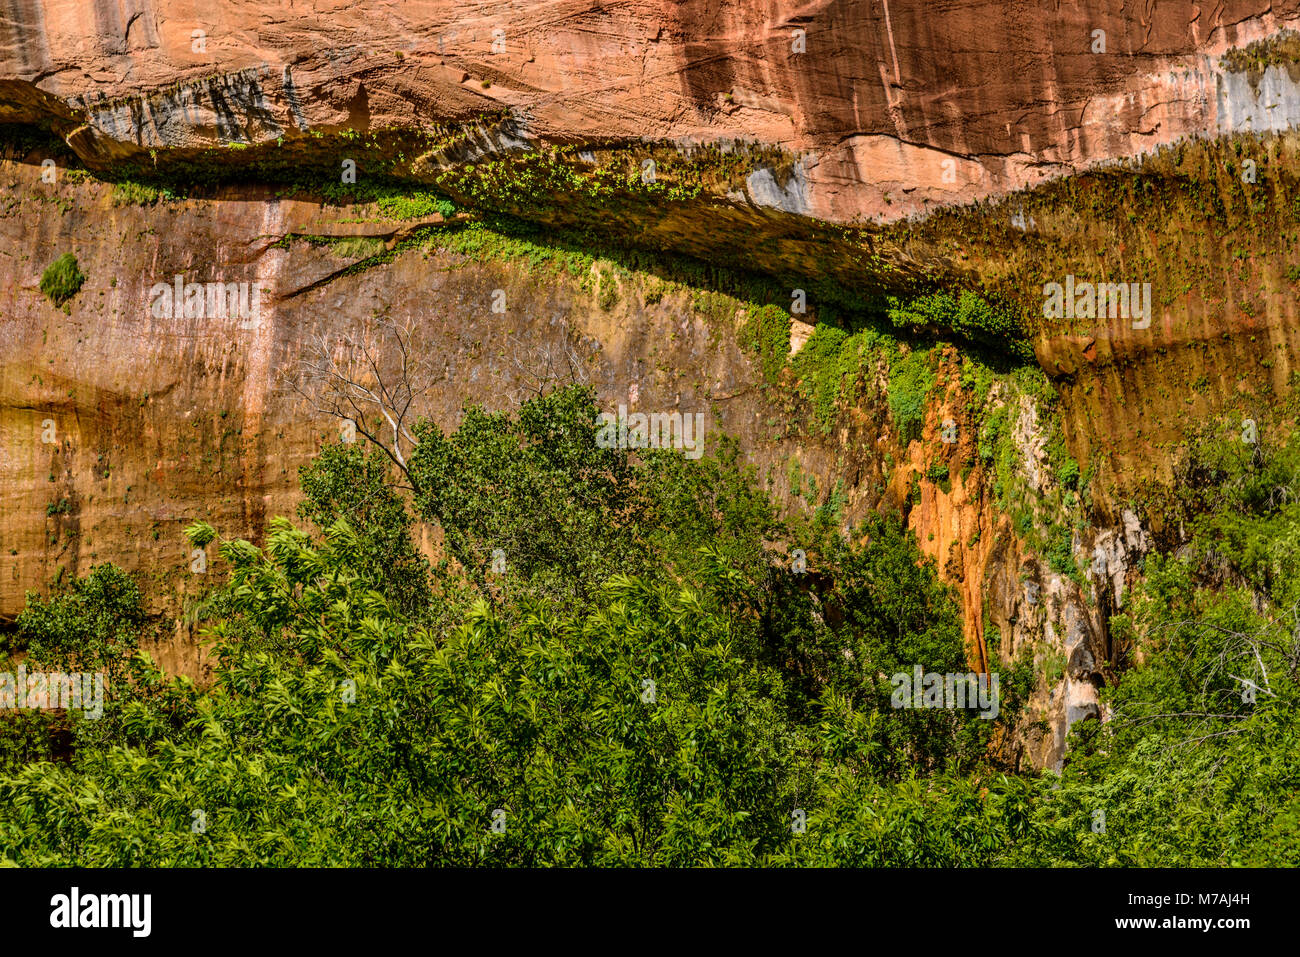 The USA, Utah, Washington county, Springdale, Zion National Park, Zion canyon, weeping rock - Stock Image